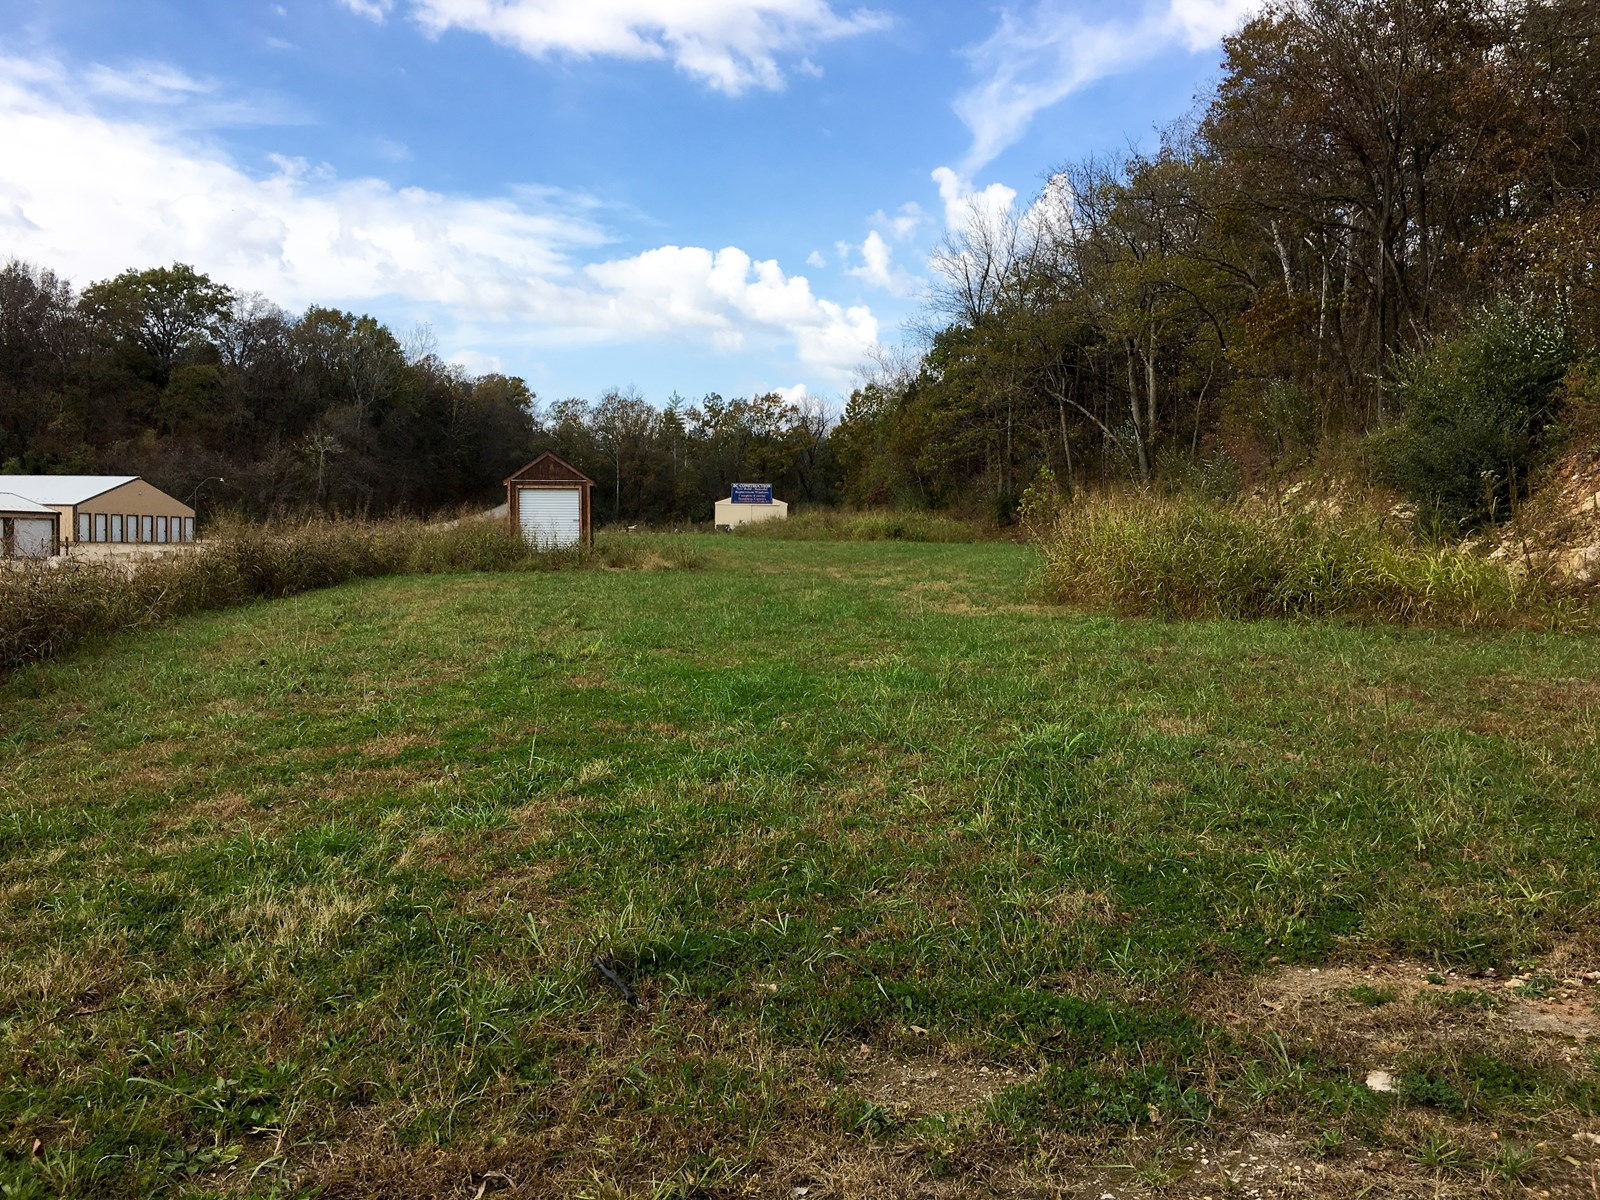 Warehouse Storage & Acreage For Sale in Hermann, Missouri